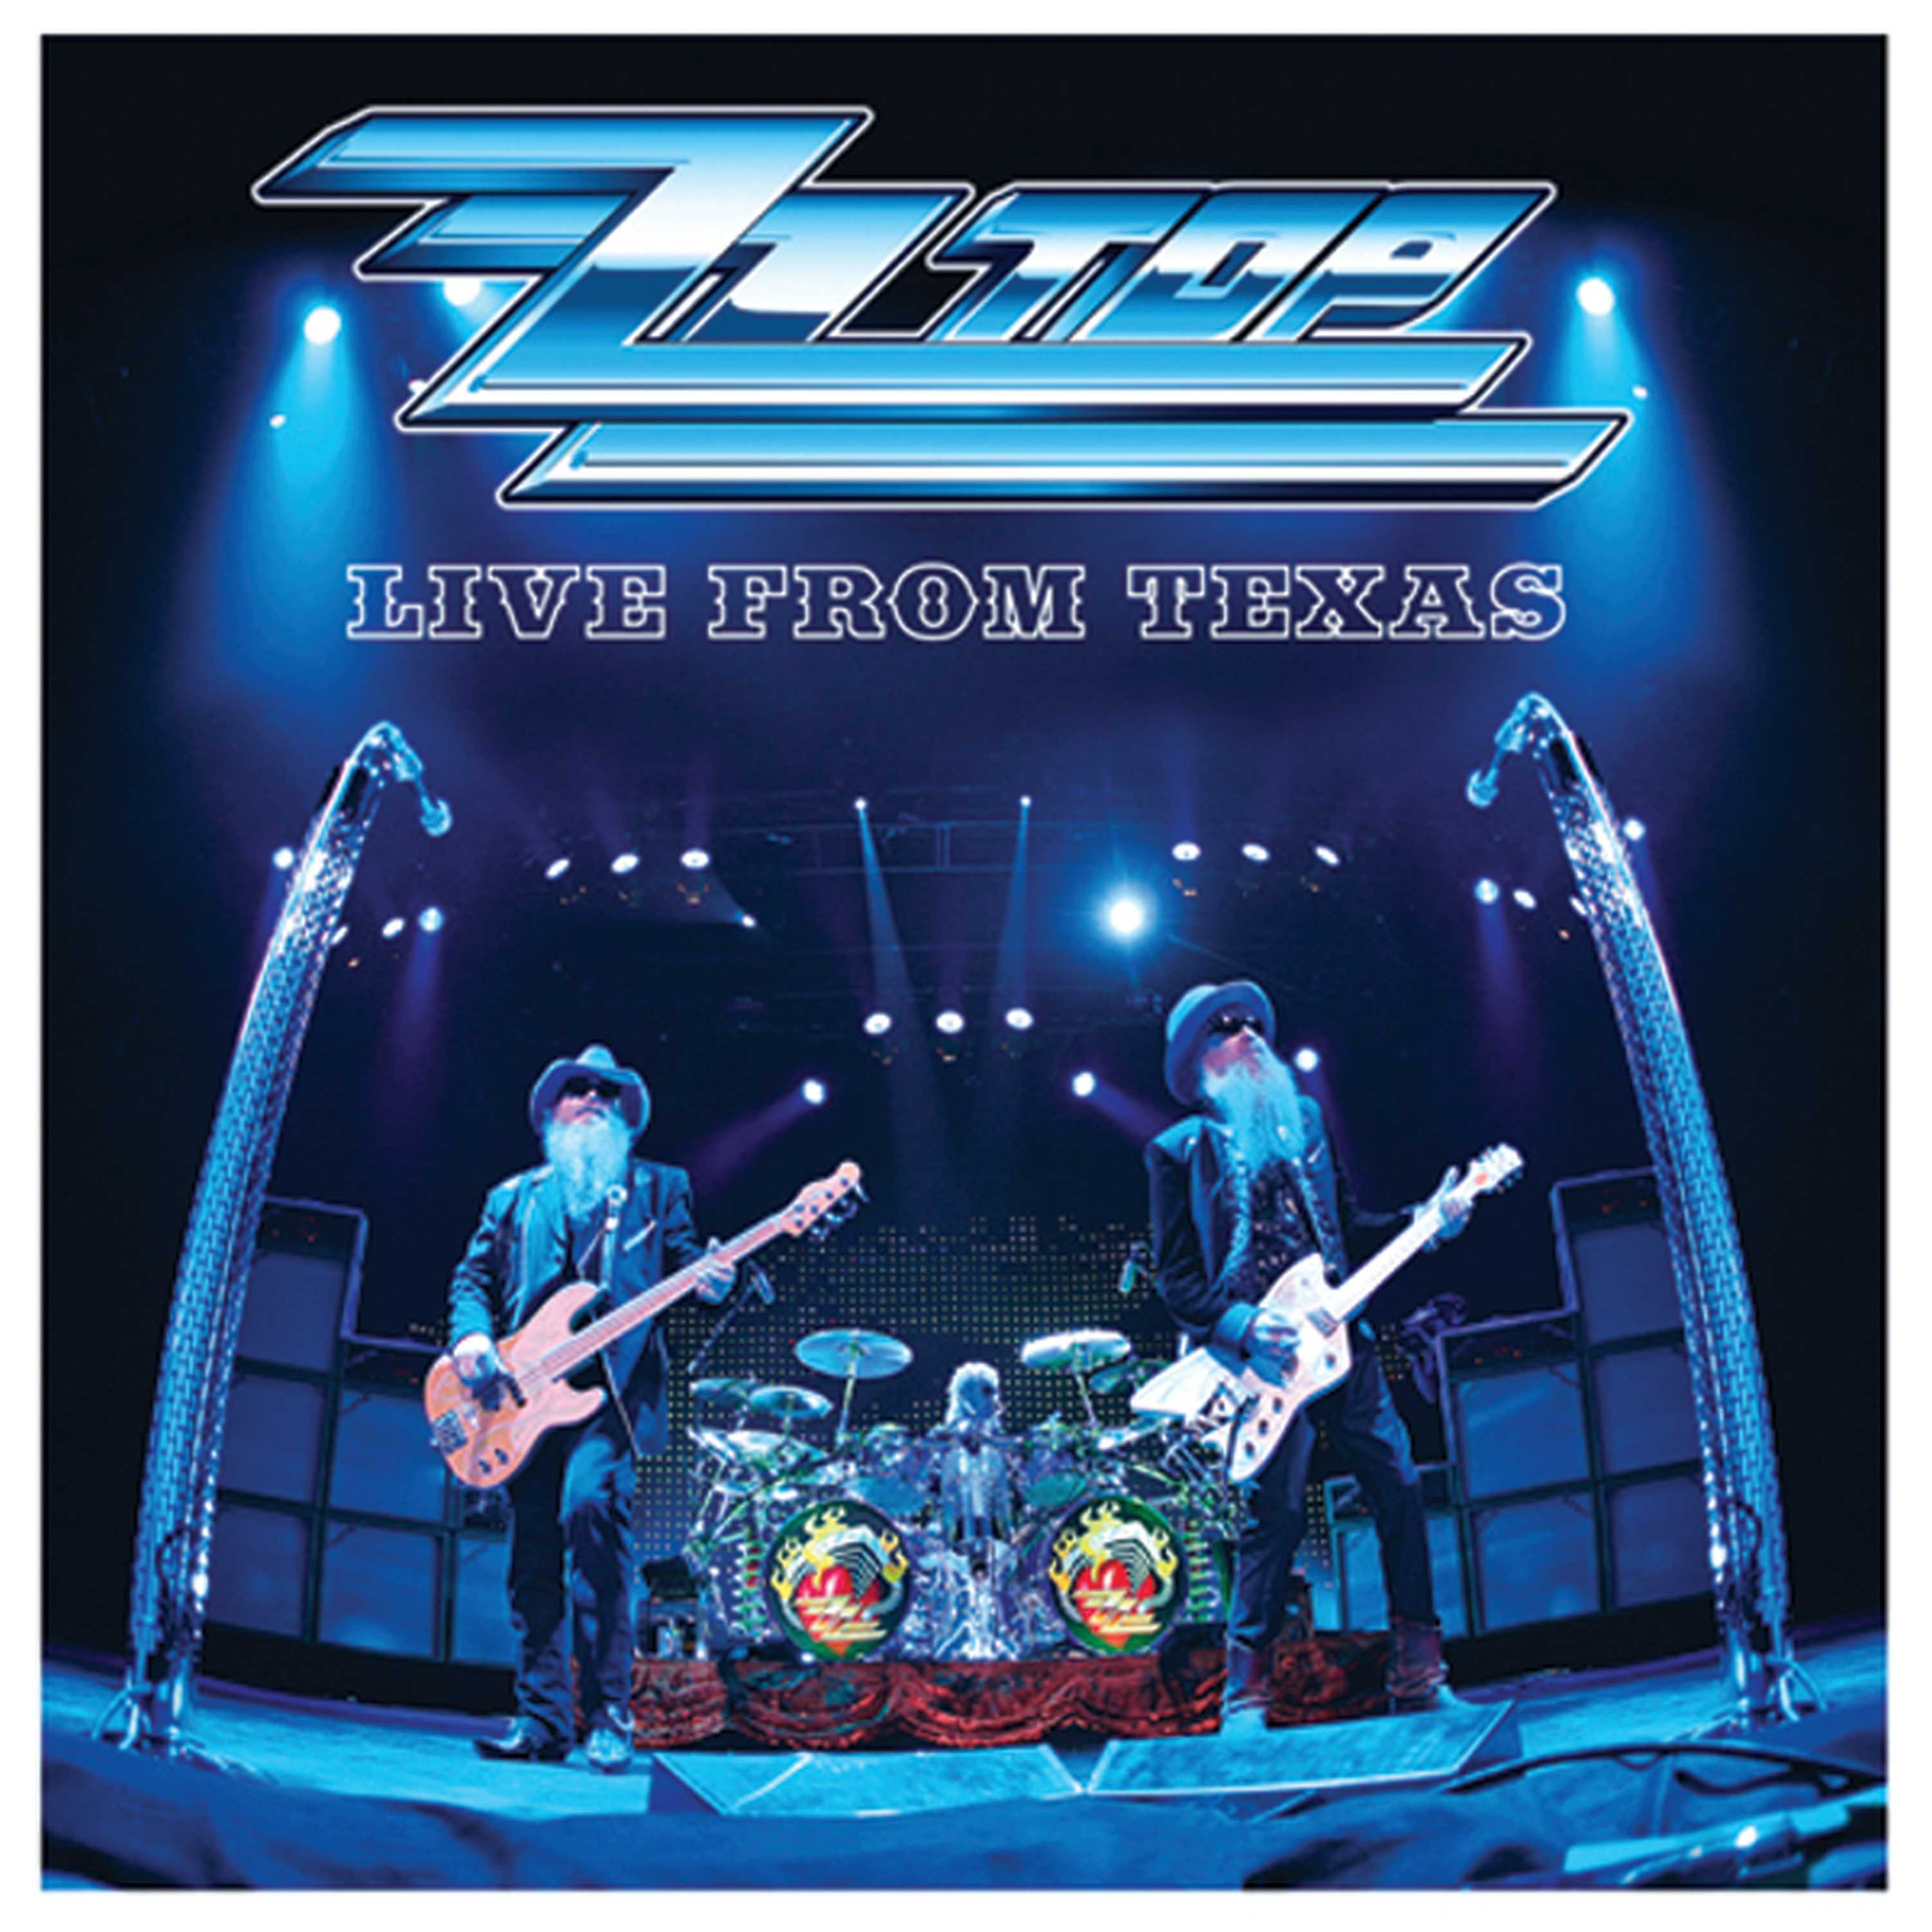 Zz Top Live From Texas Lpx2 Rough Trade Something for everyone interested in hair, makeup, style, and body positivity. live from texas